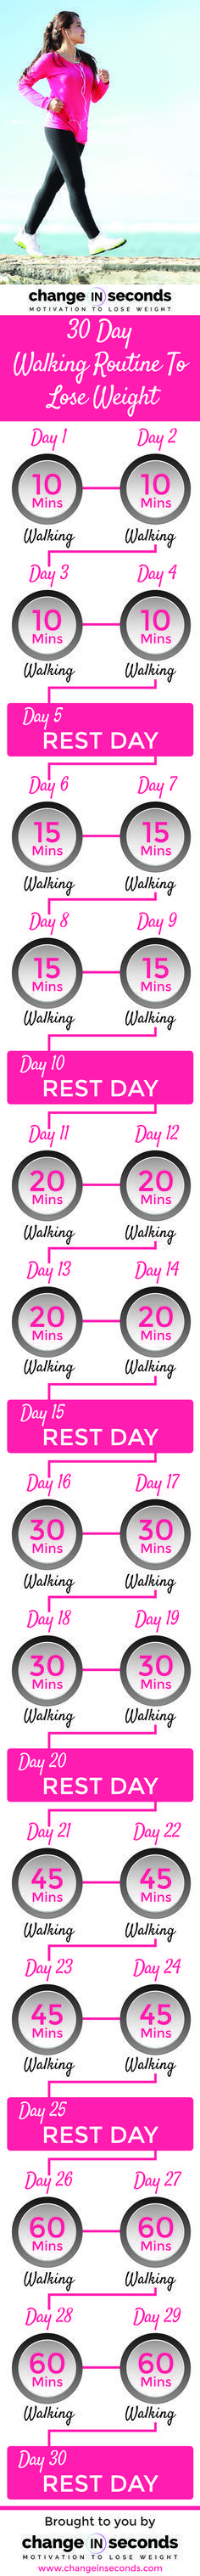 30 Day Walking Routine To Lose Weight http://www.changeinseconds.com/30-day-walking-routine-to-lose-weight/